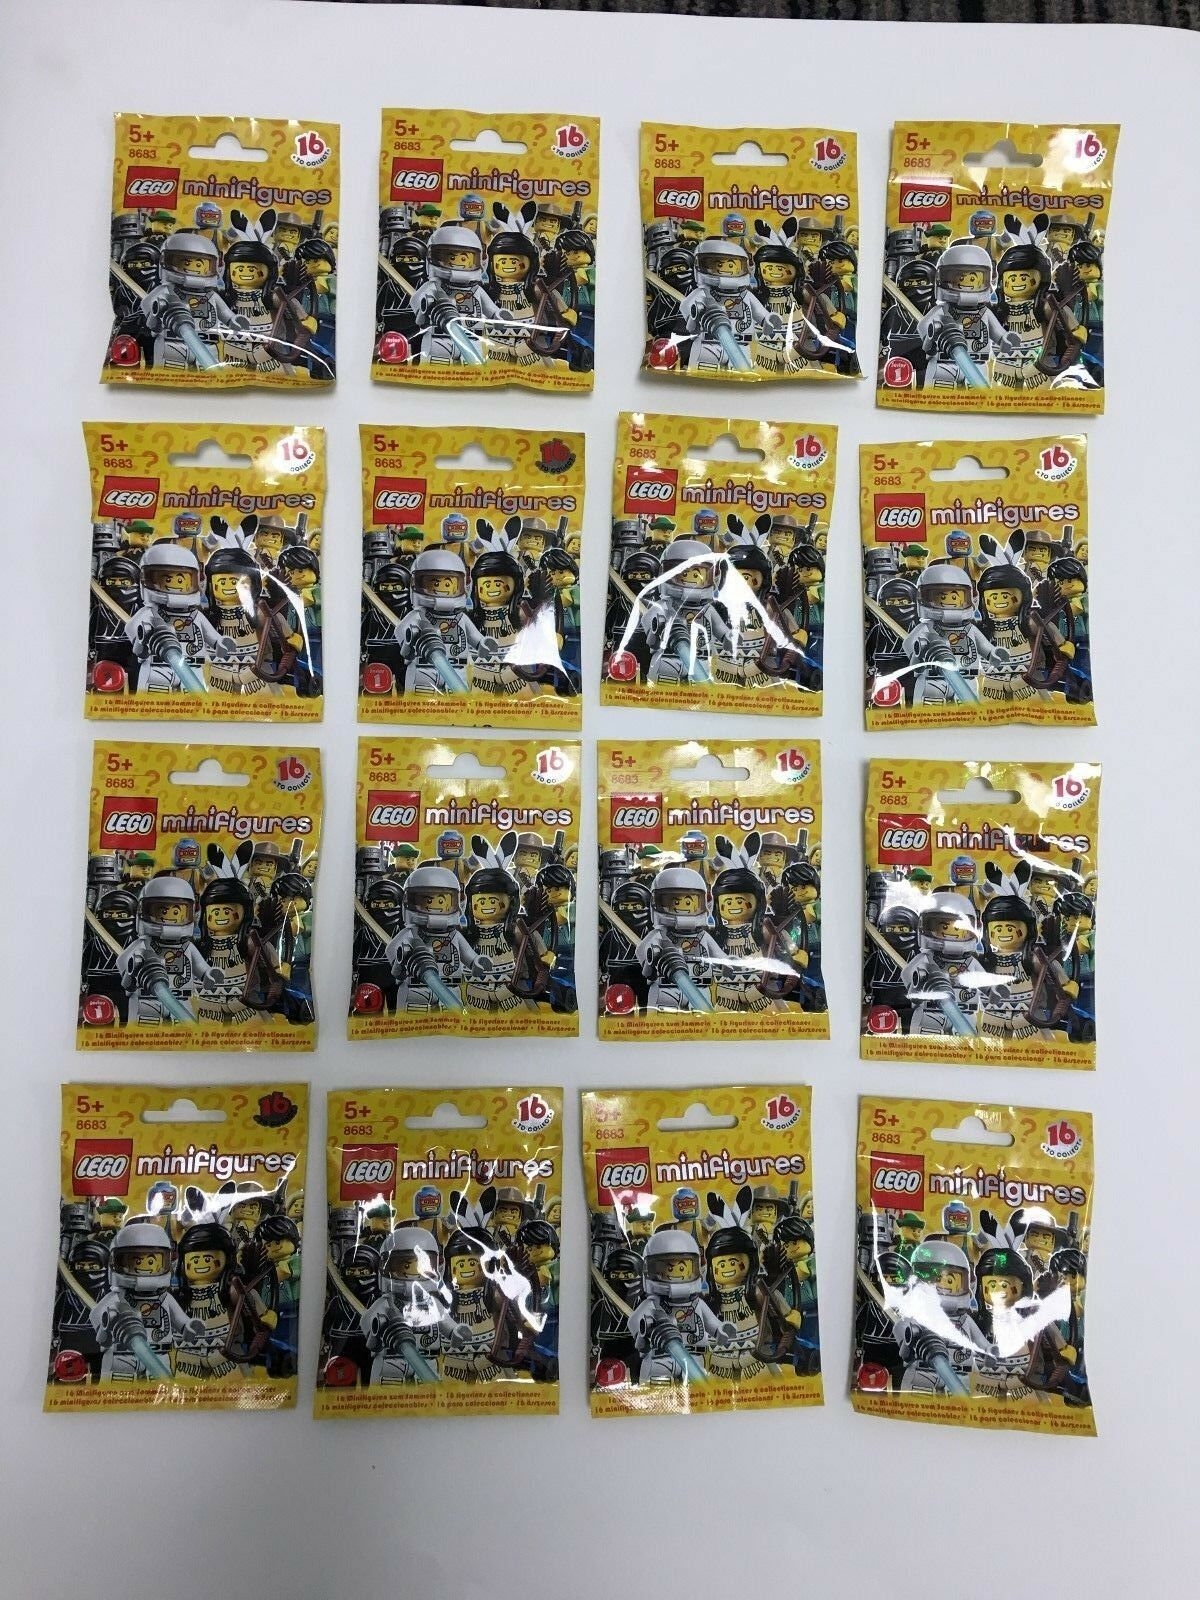 LEGO Minifigures Series 1 - Full Set - 8683 - Brand New & Factory Sealed